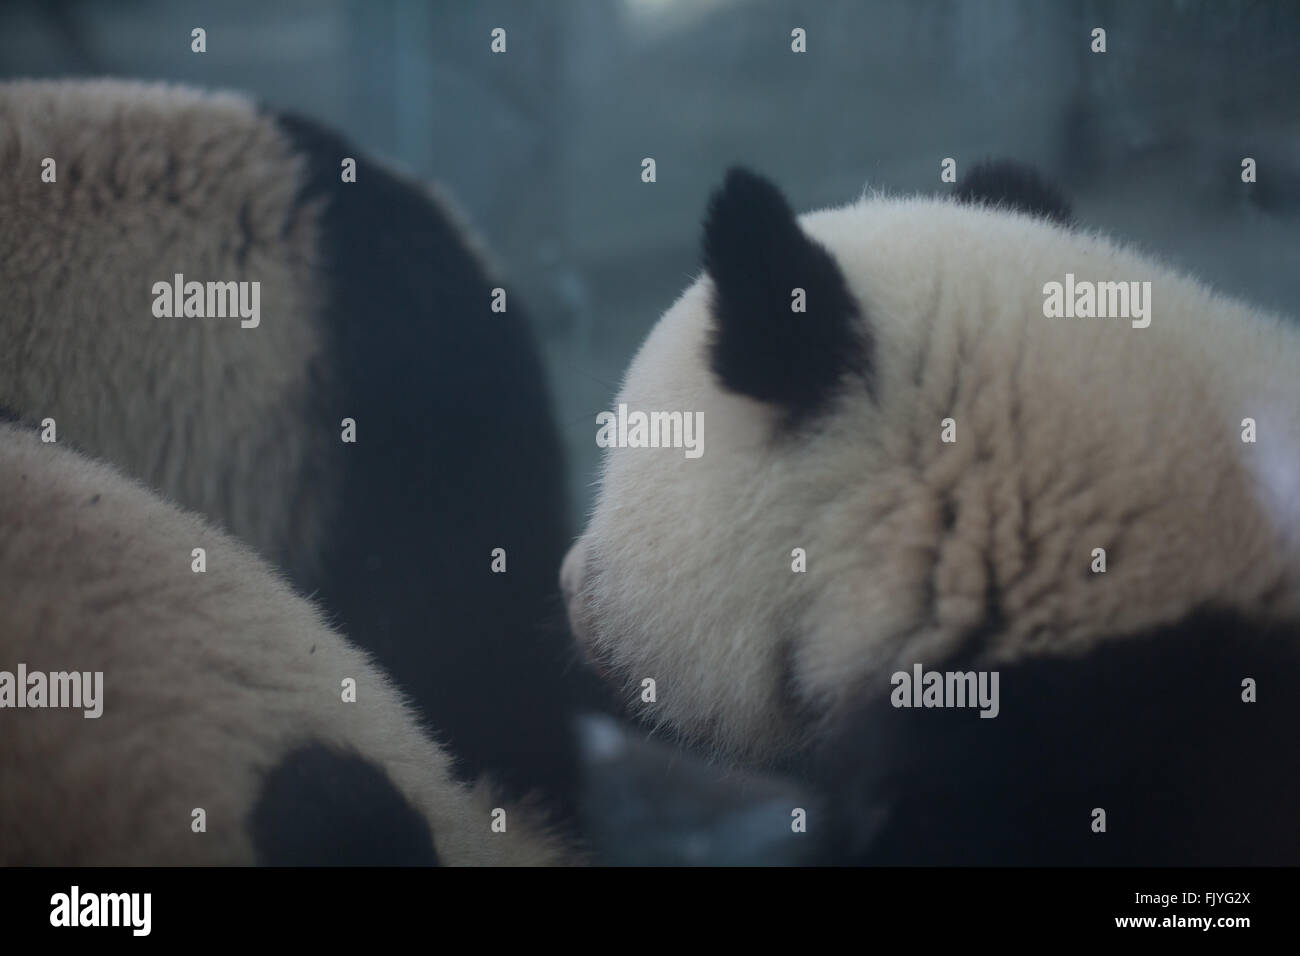 Pandas In Foggy Weather - Stock Image